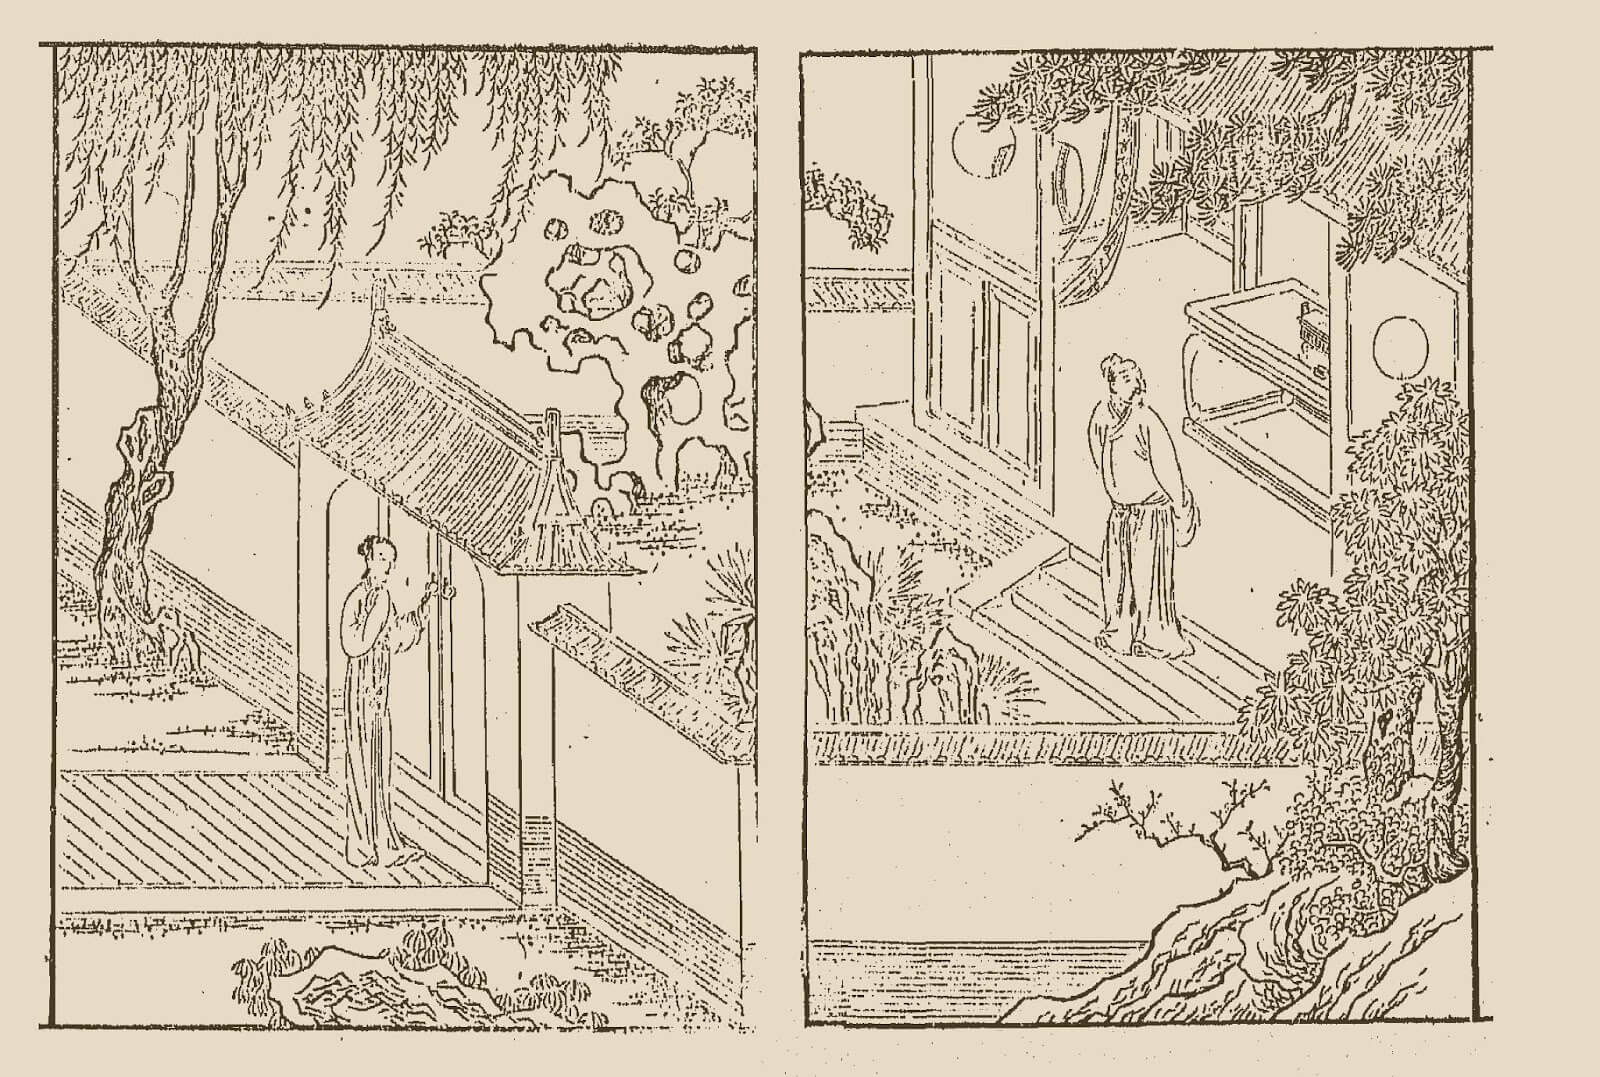 Mulan returns home. Included as an illustration in an early woodblock printing of a collection of Xu Wei's plays